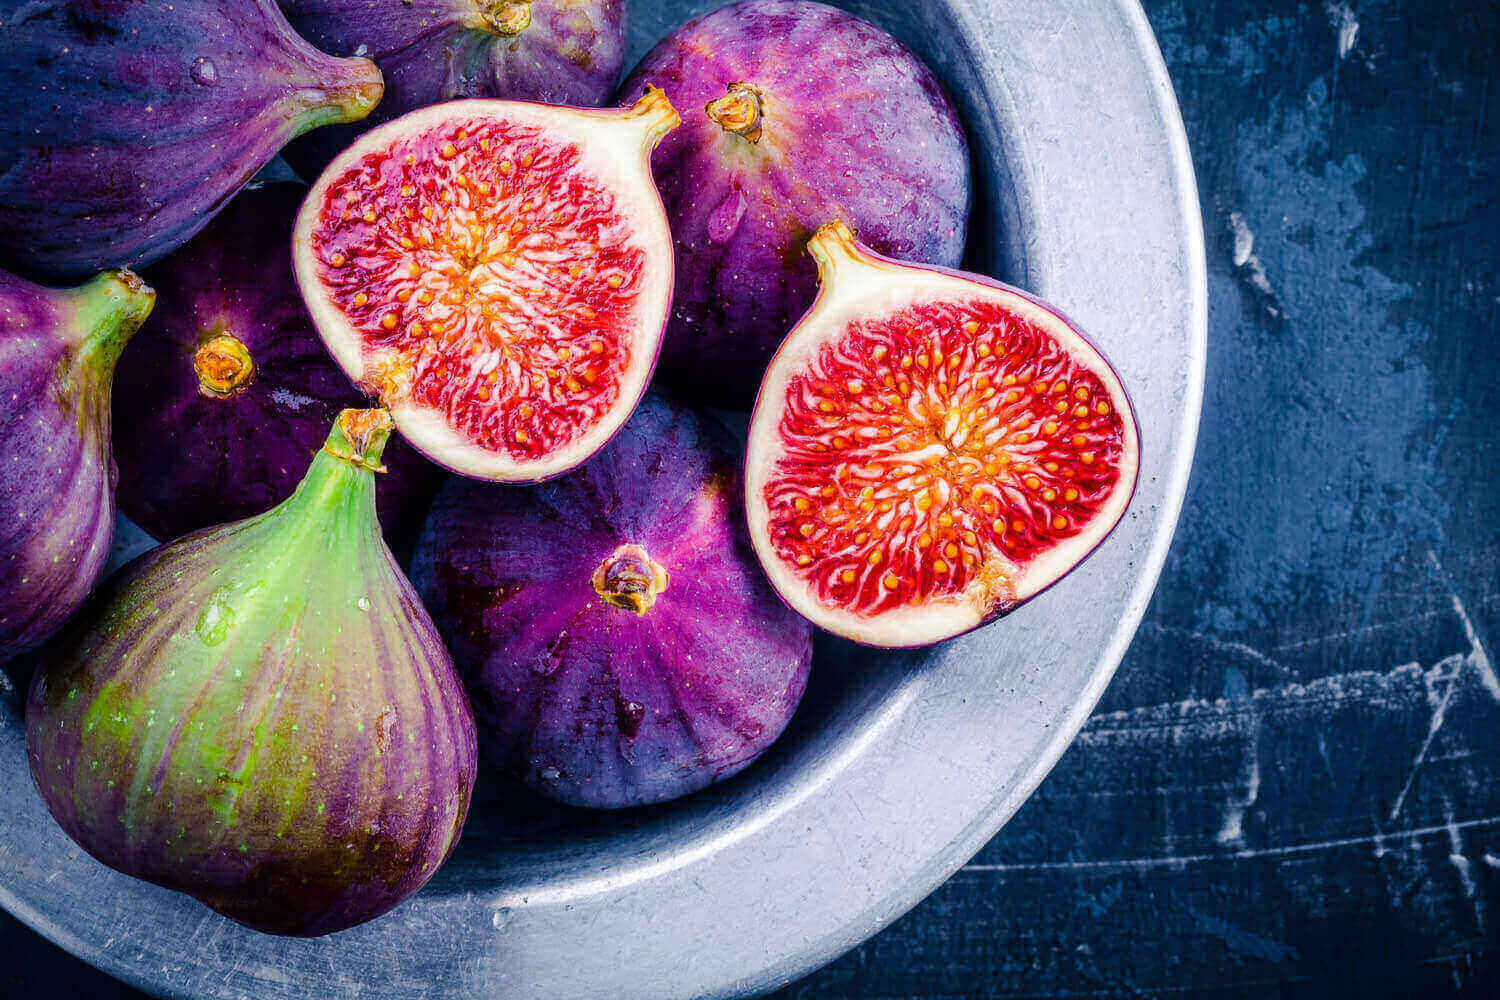 Figs for Babies: Benefits and Precautions